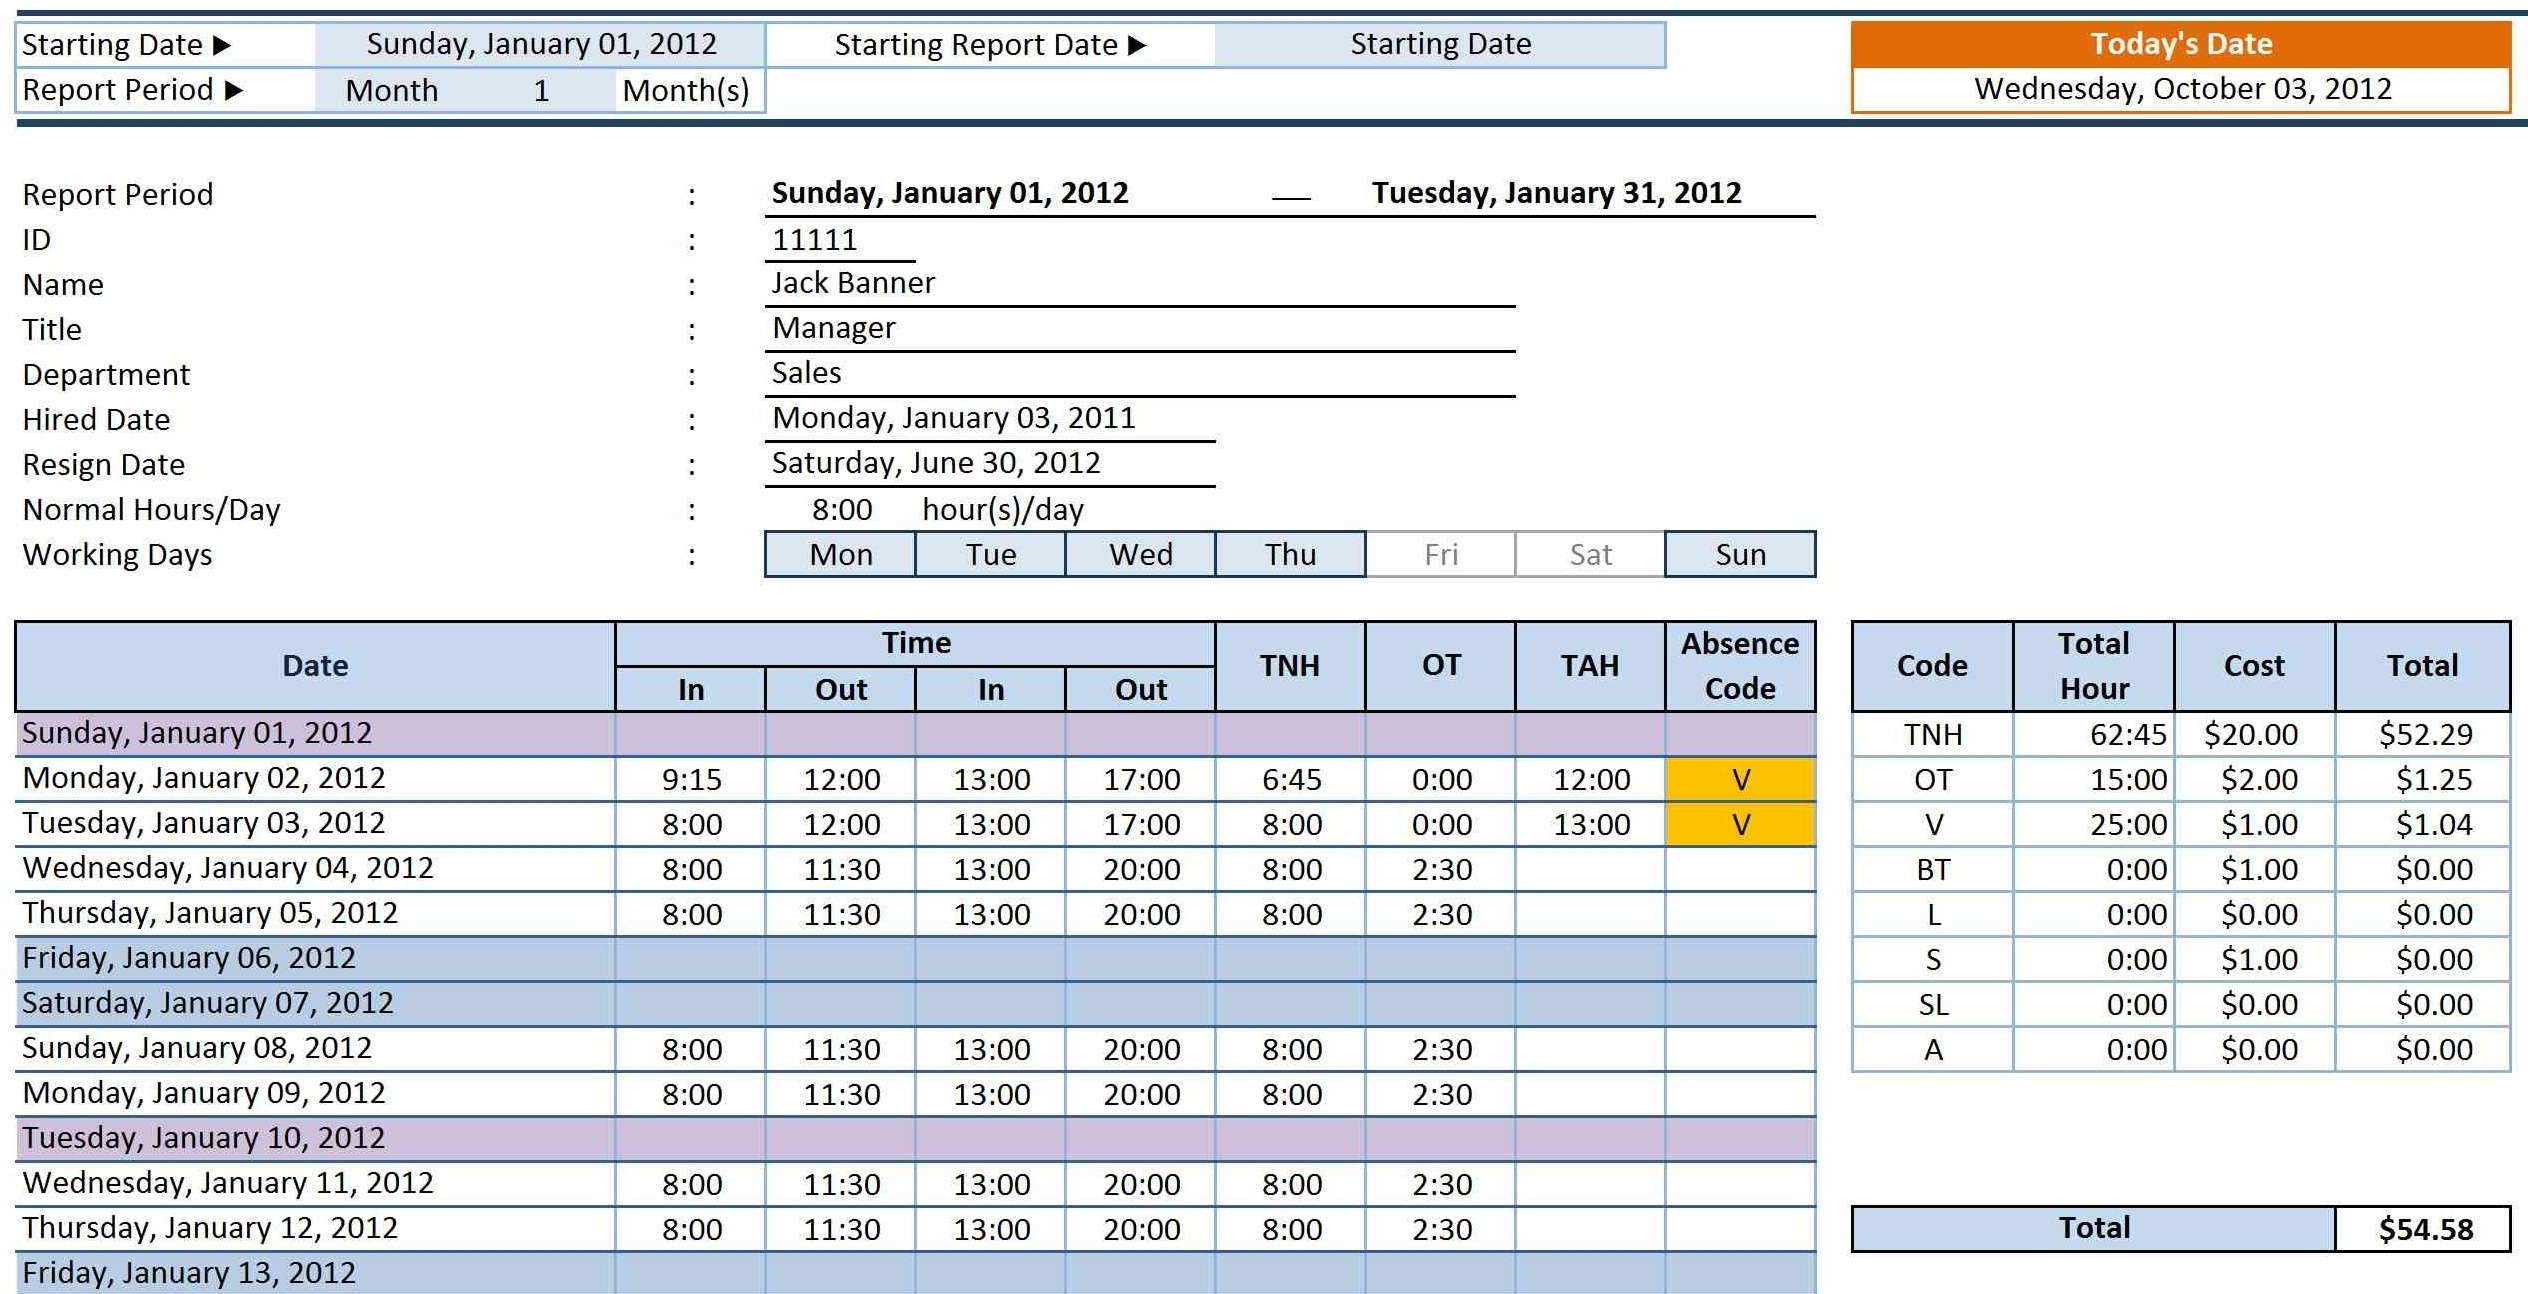 Employee Time Tracking Spreadsheet Free Pertaining To Time Log Template Excel Luxury Spreadsheet Examples Free Employee